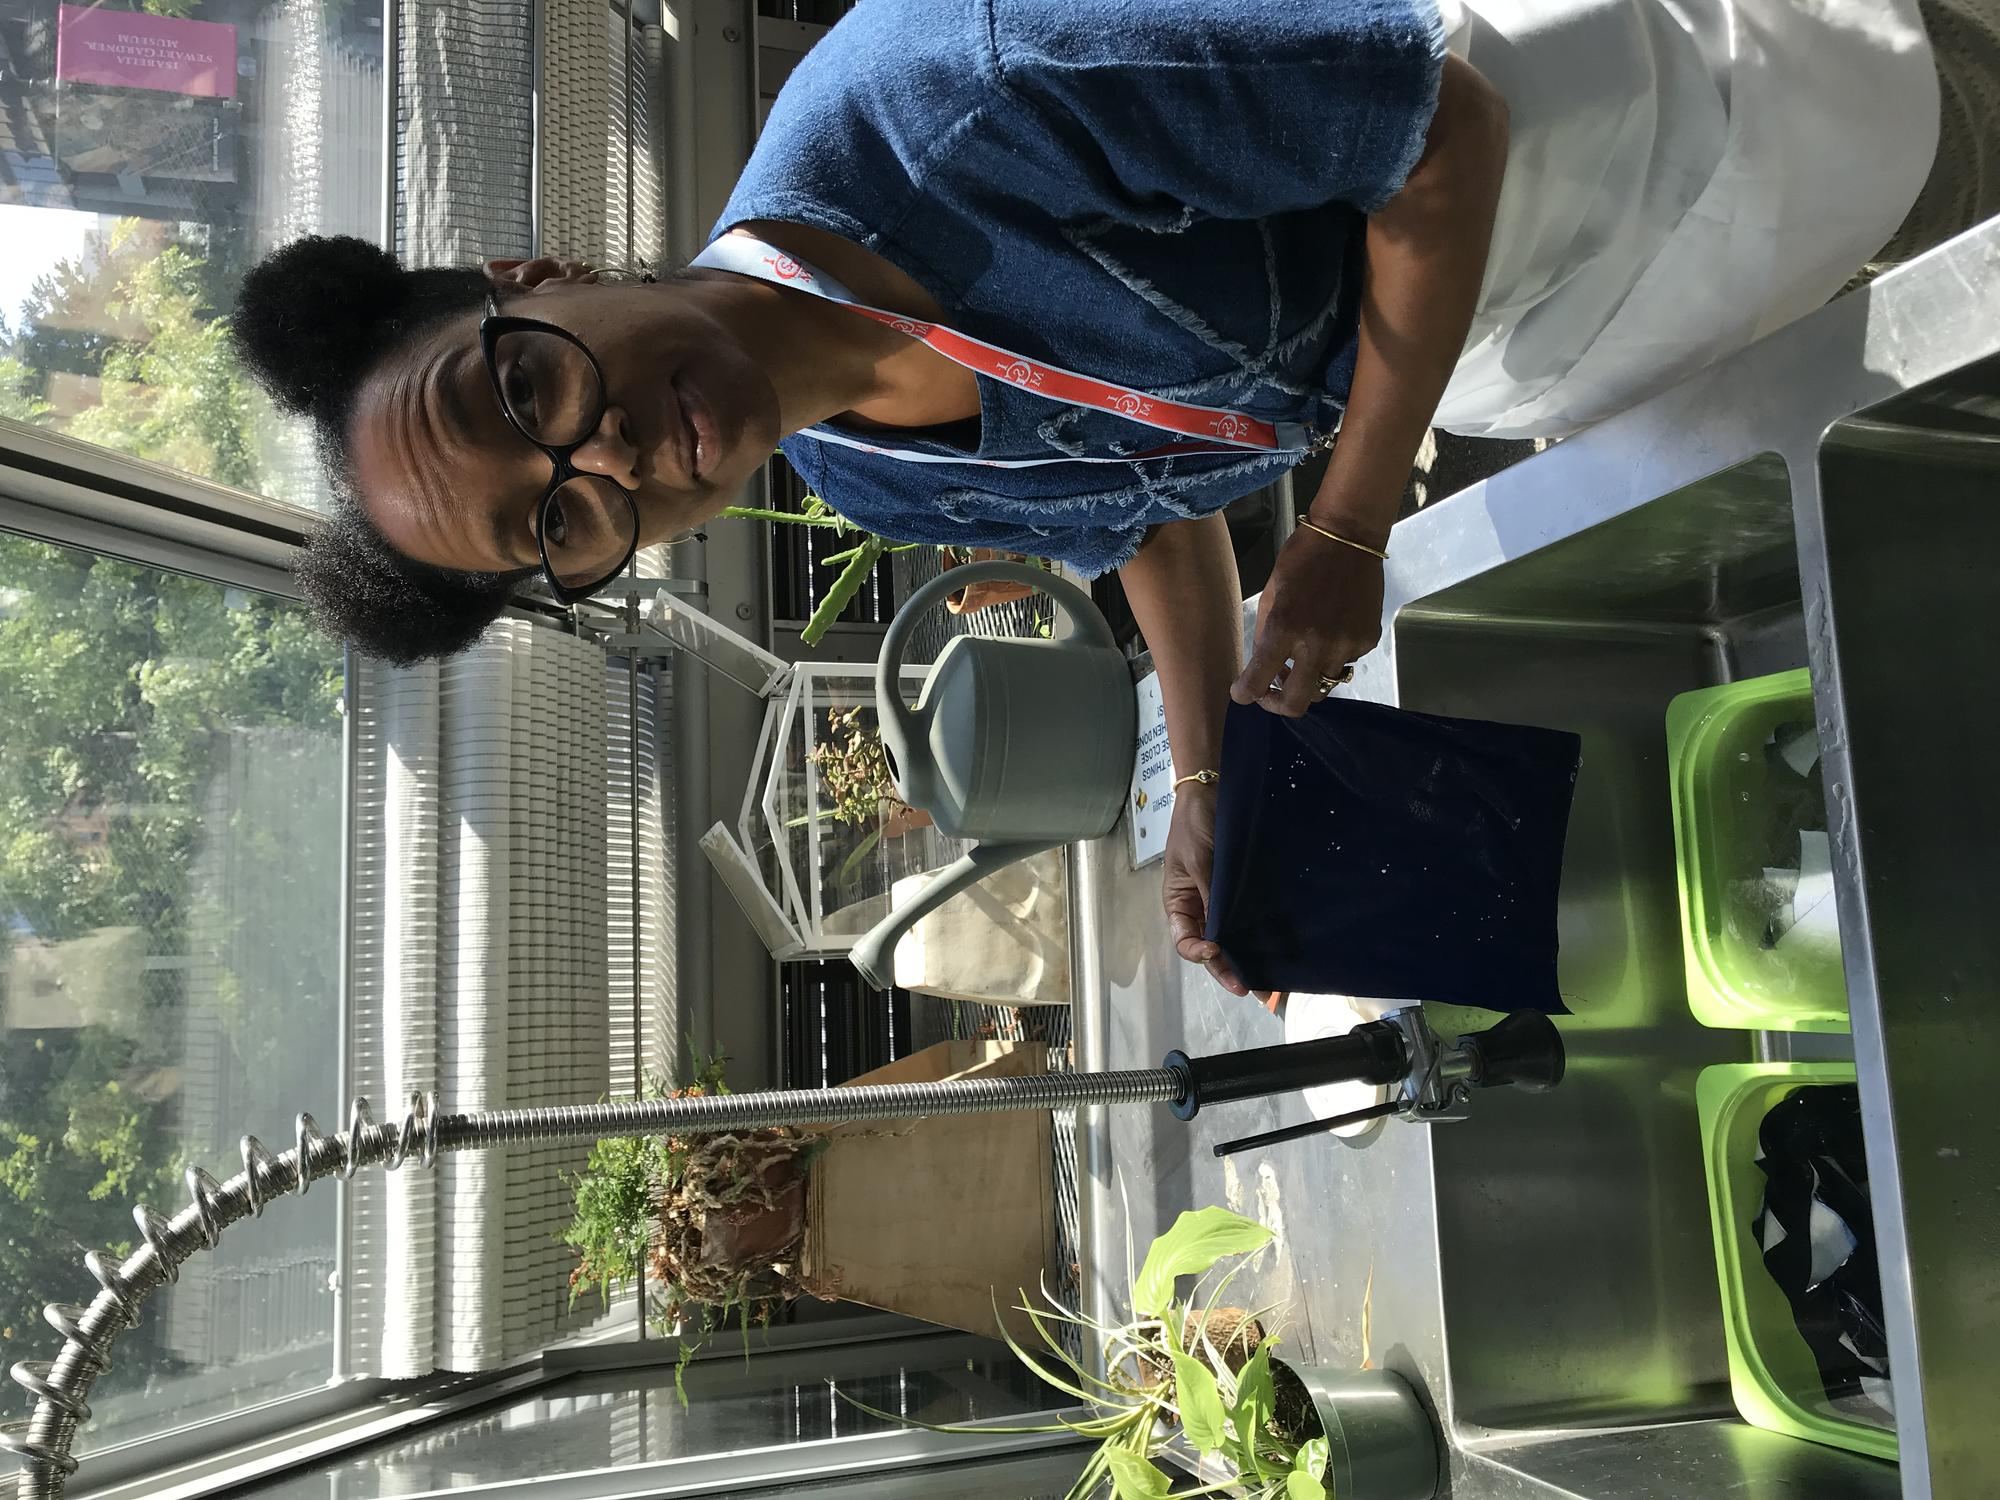 Sonya Clark working on cyanotype project in the Education Greenhouse, 2019